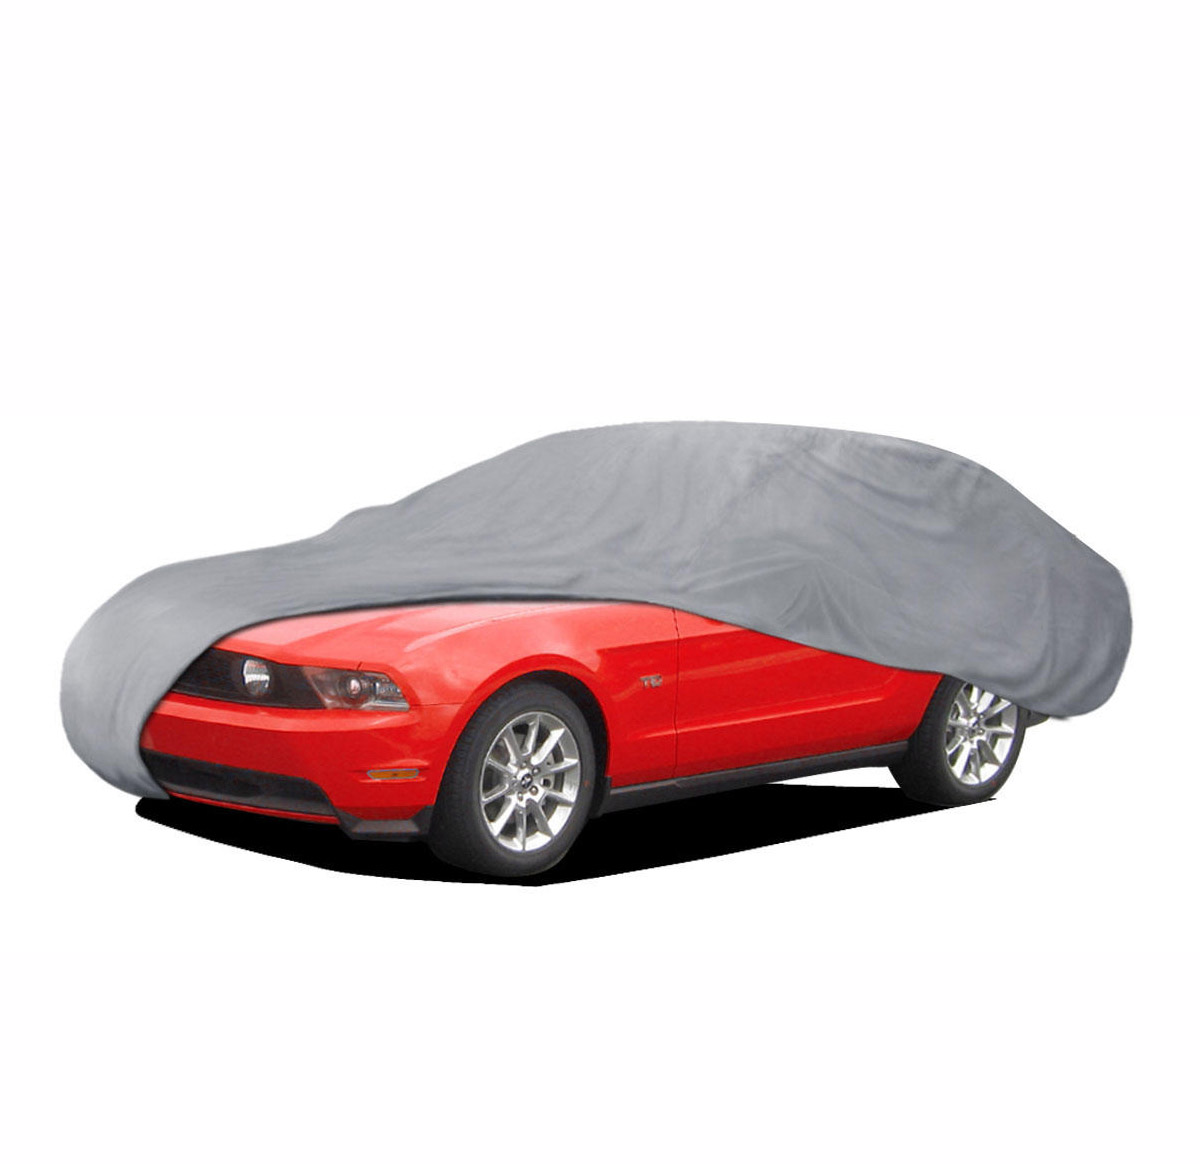 car cover for ford mustang 65 04 outdoor waterproof sun uv proof 5 layer ebay. Black Bedroom Furniture Sets. Home Design Ideas